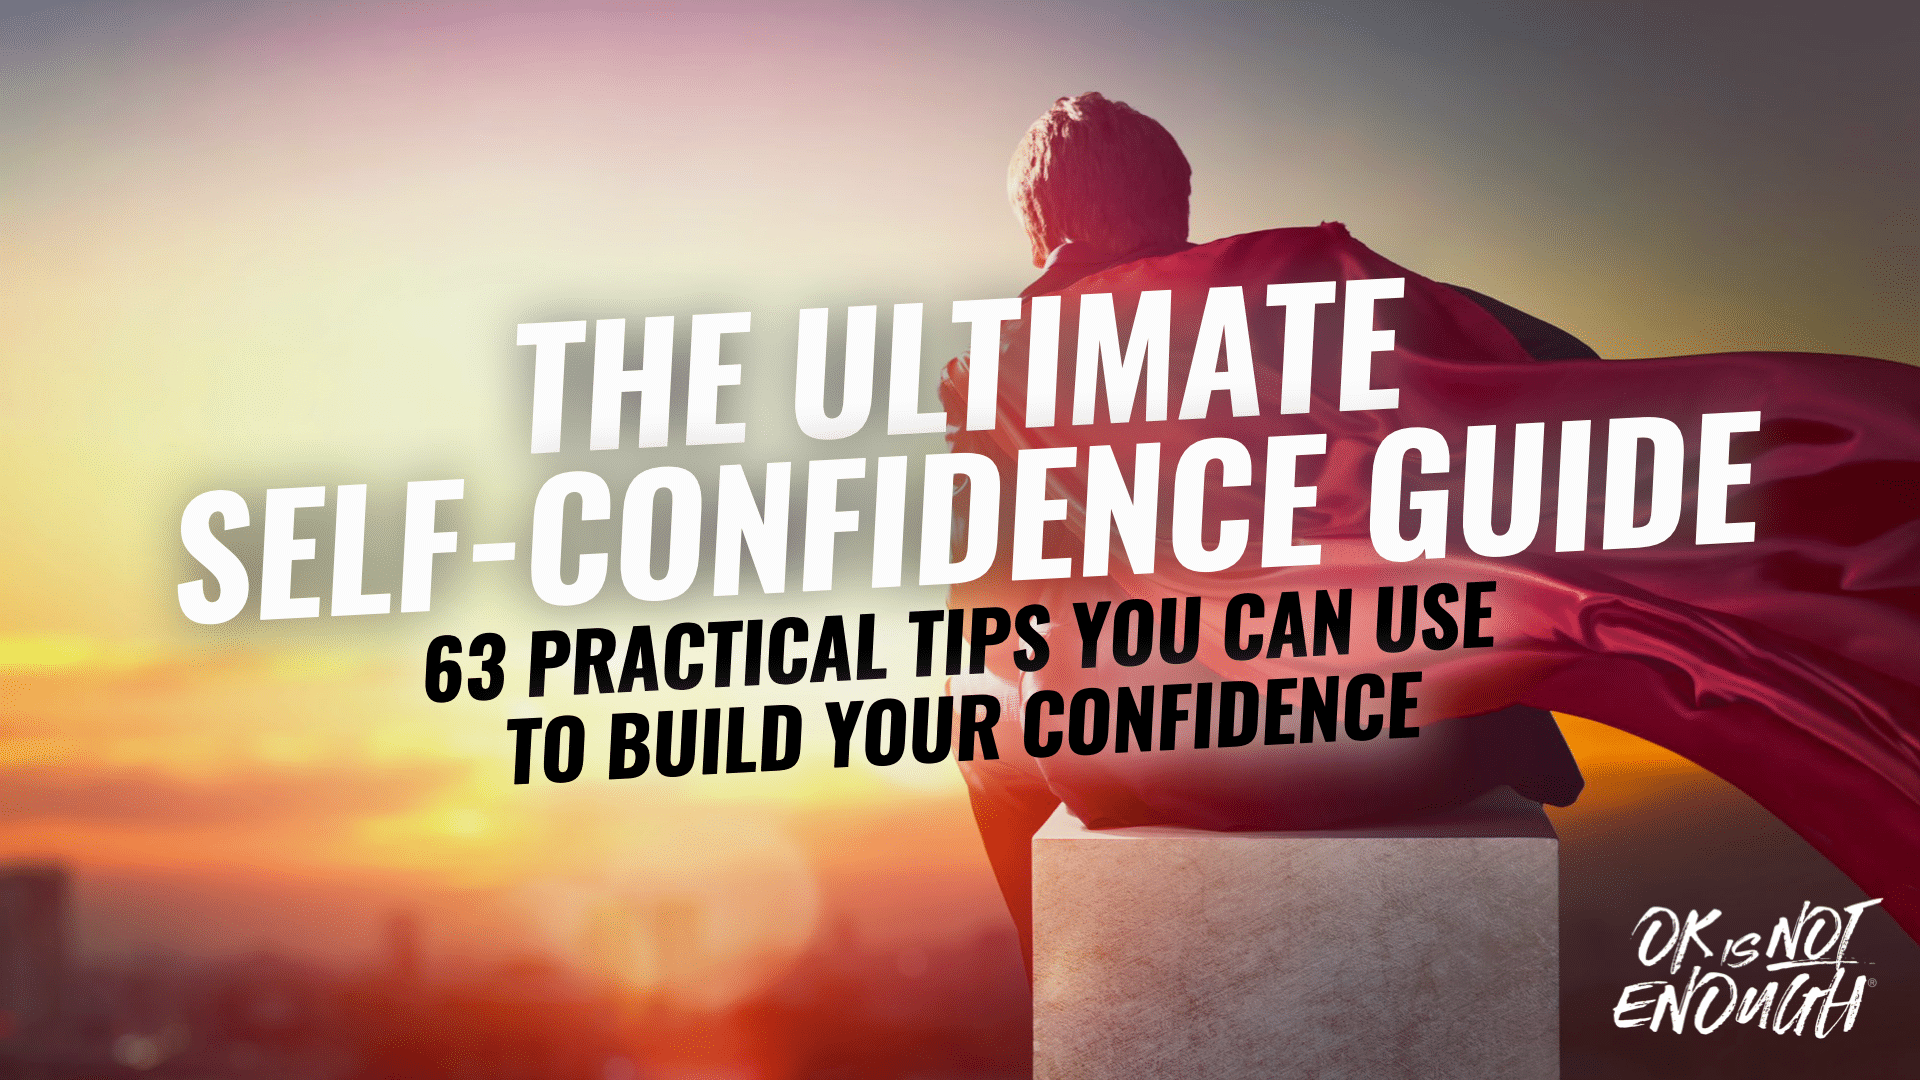 How to build self-confidence ultimate confidence guide. 63 Confidence tips.